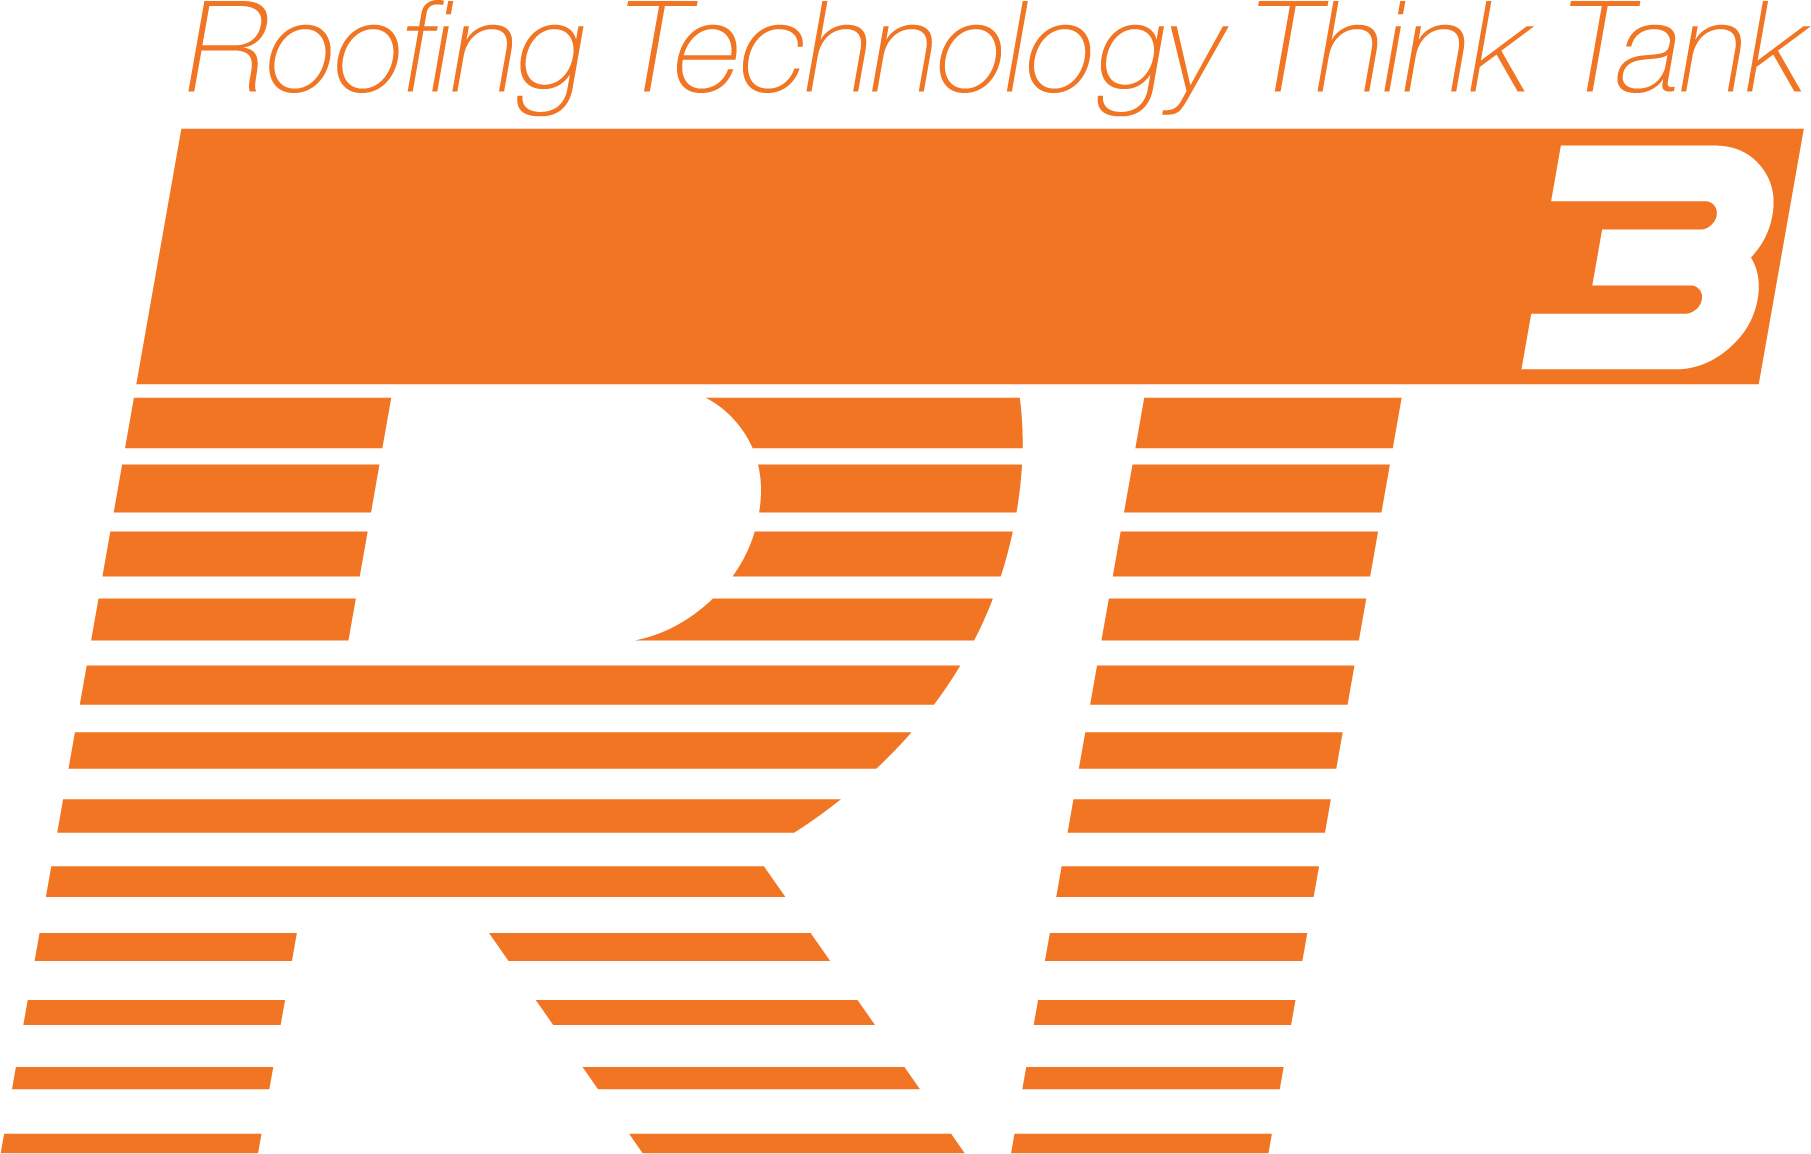 Roofing Technology Think Tank Rt3 Announces Mission